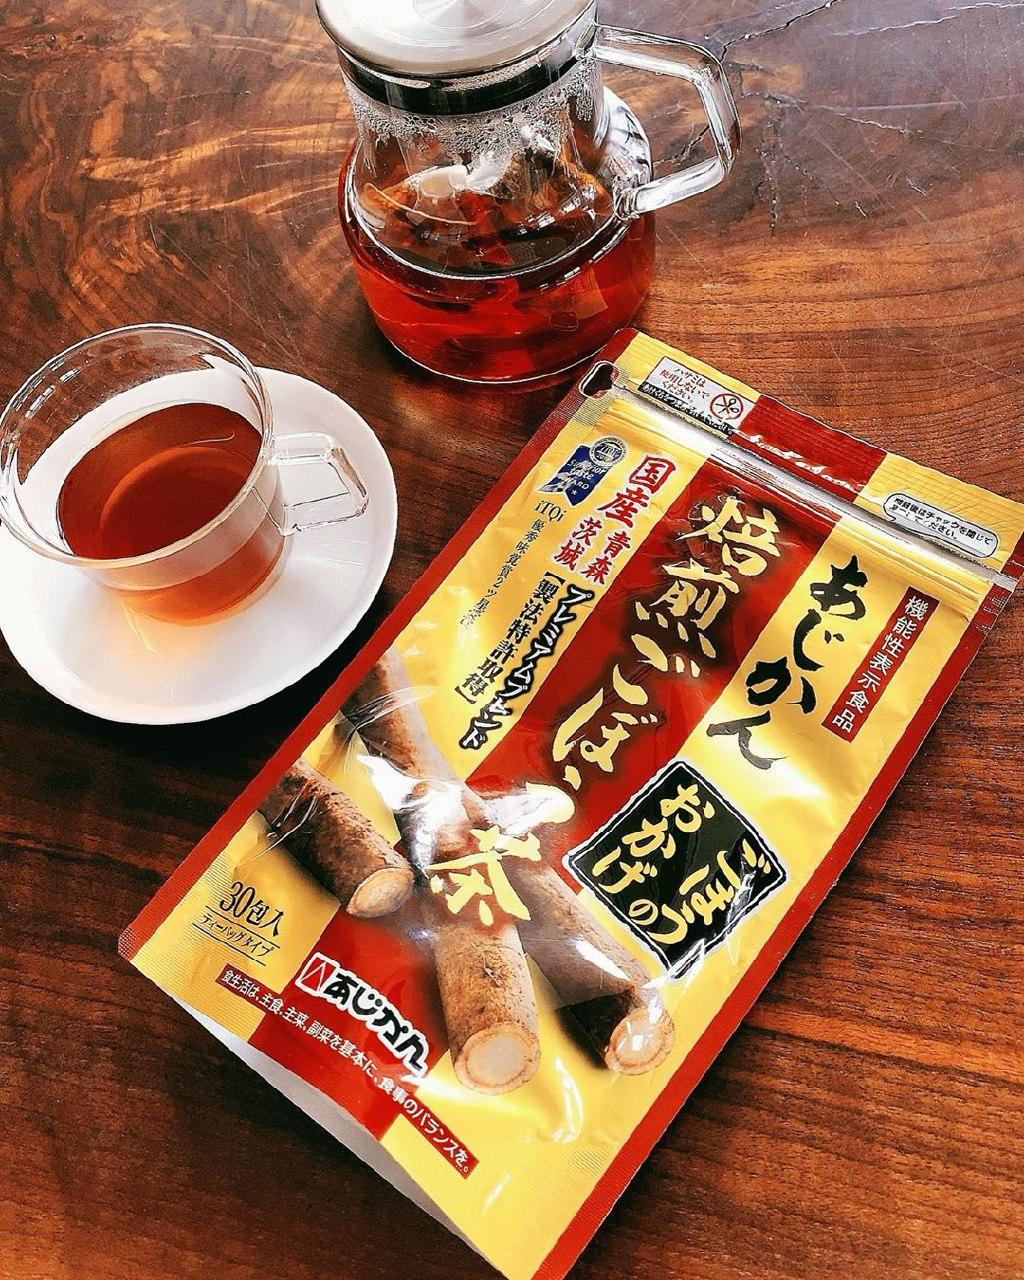 gobo cha burdock root Japanese tea